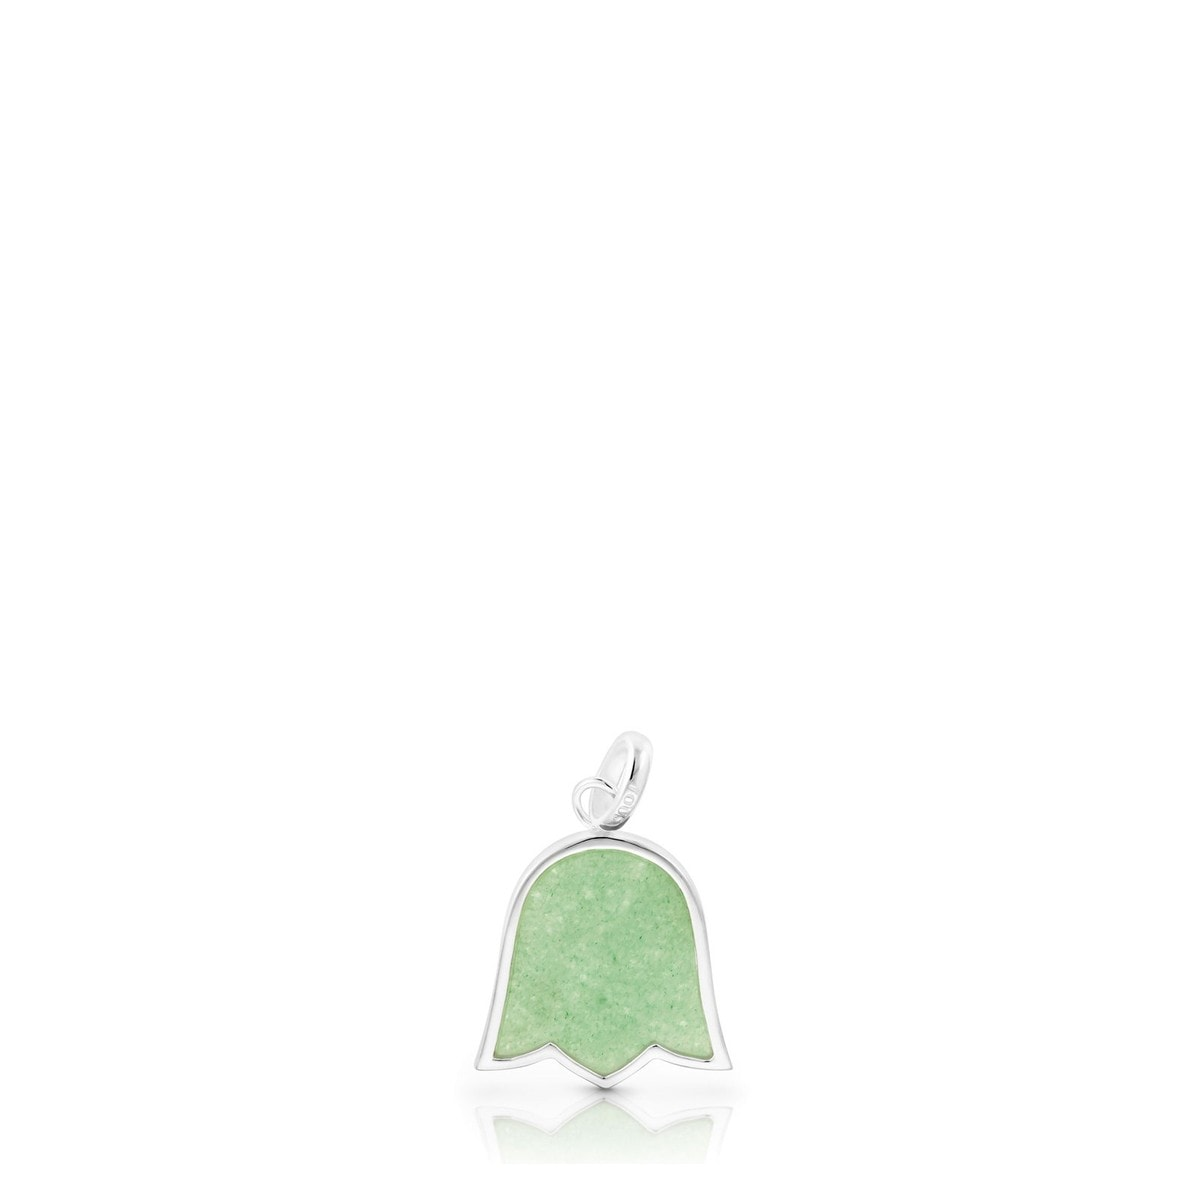 Silver Rainbow Pendant with Aventurine